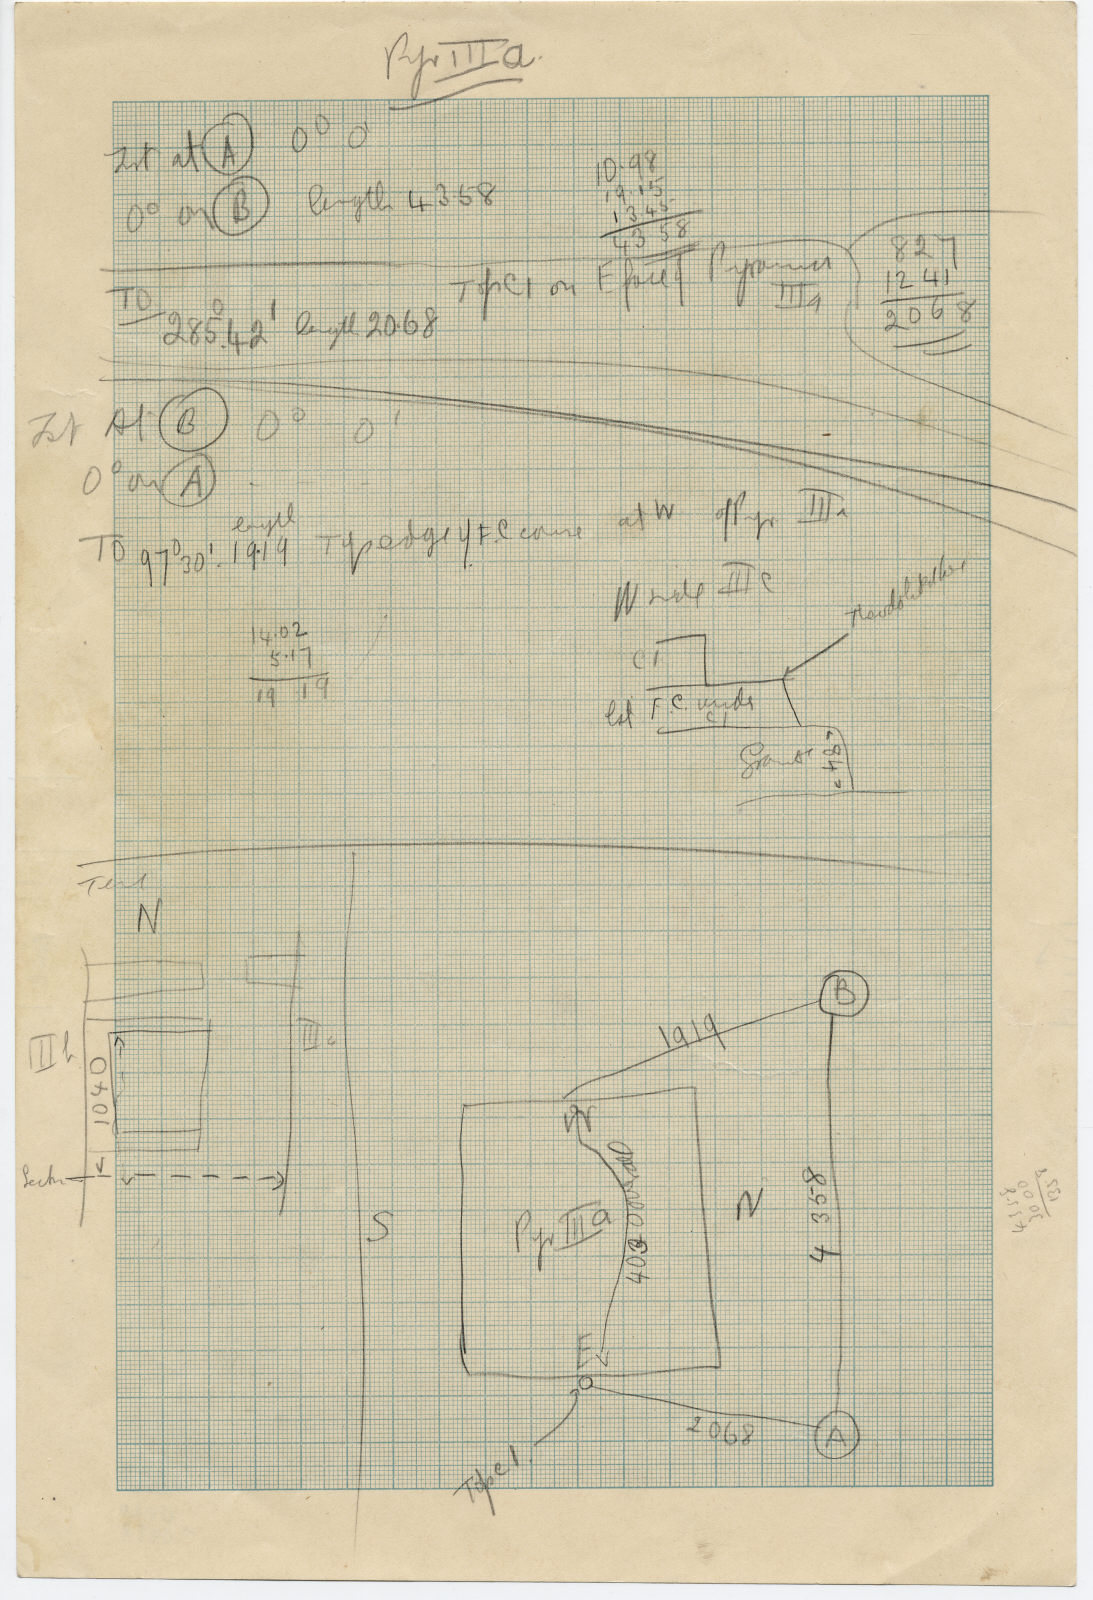 Maps and plans: G III-a: notes and sketches